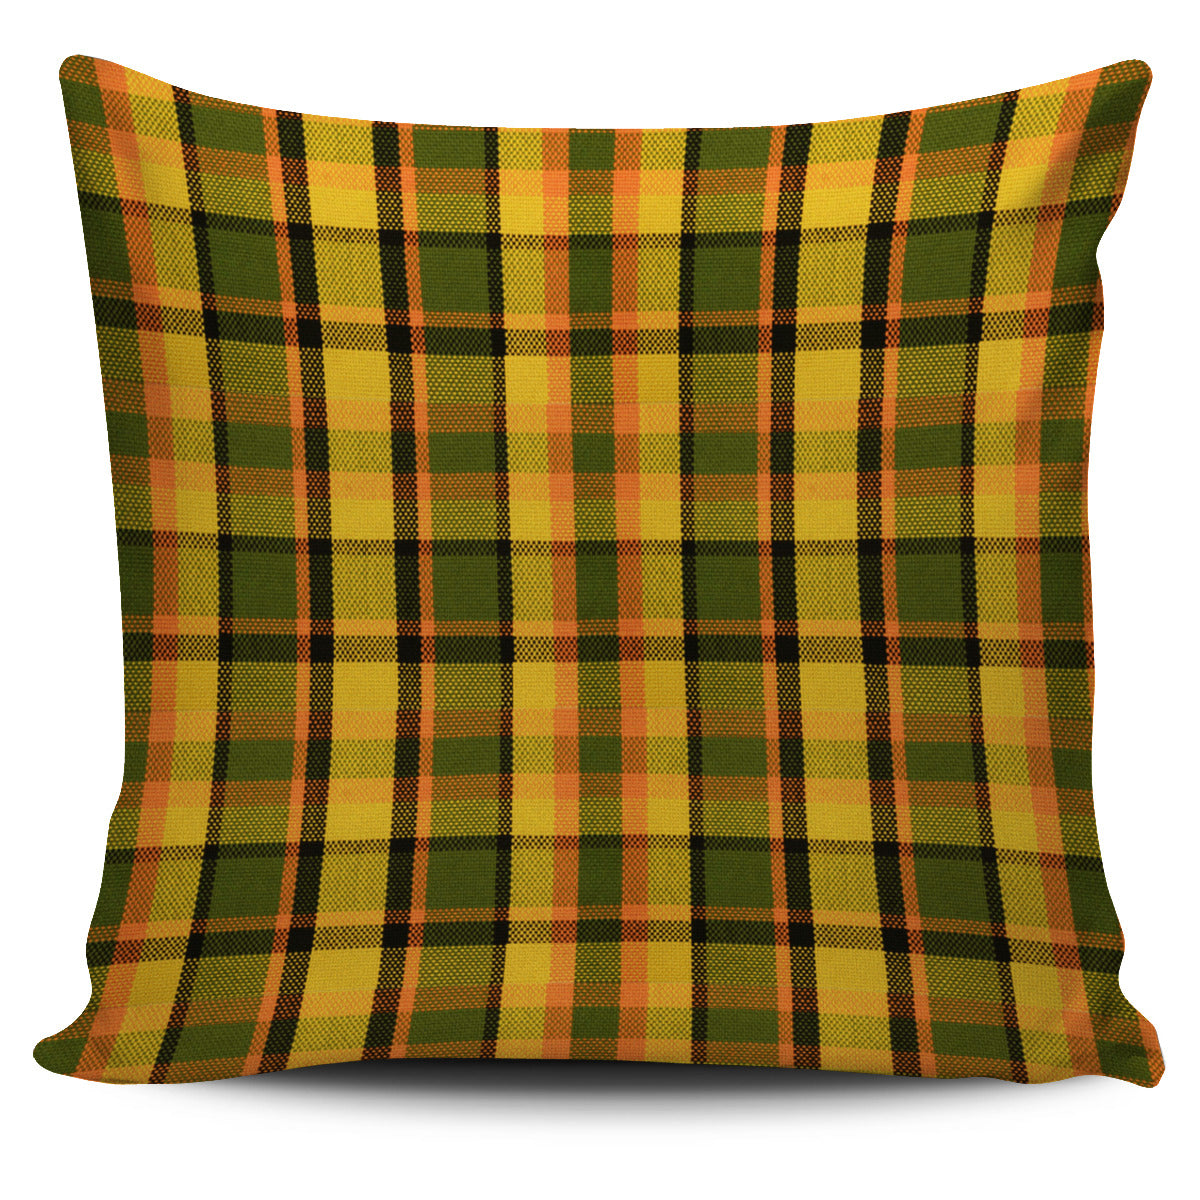 Retro Yellow Plaid Pillow Case